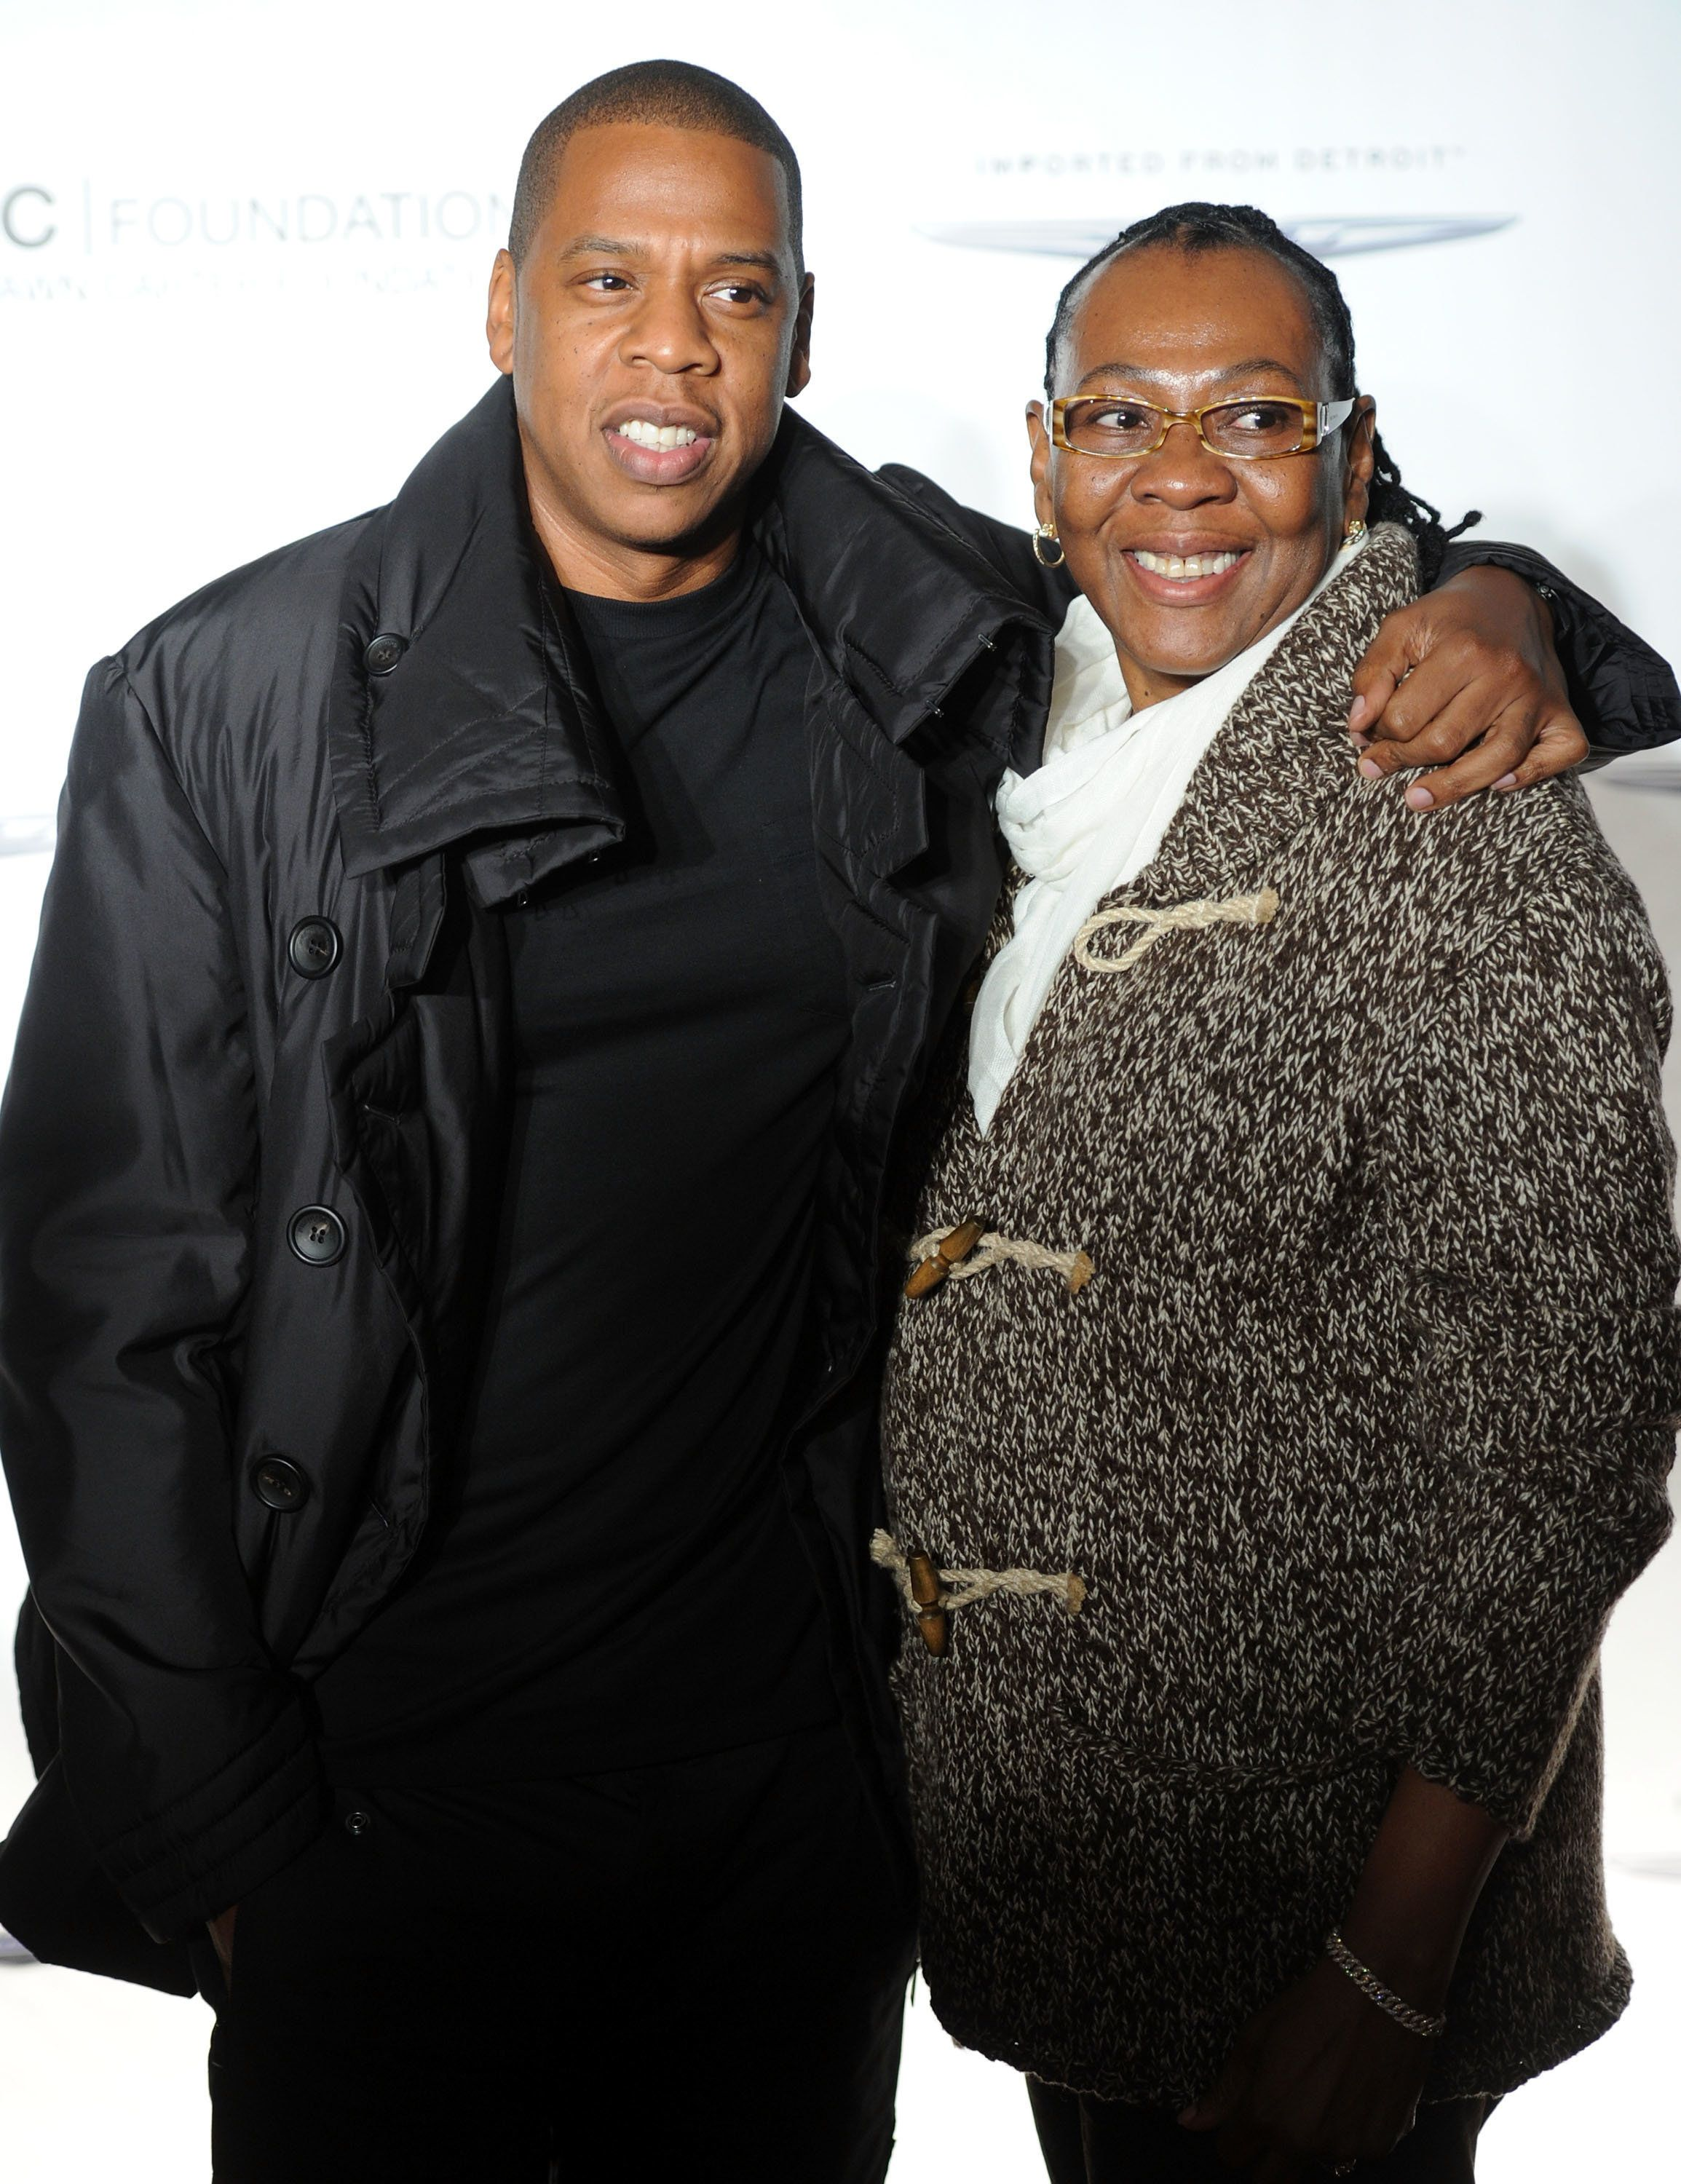 Jay-Z's Mom Comes Out As Lesbian In New Duet On His